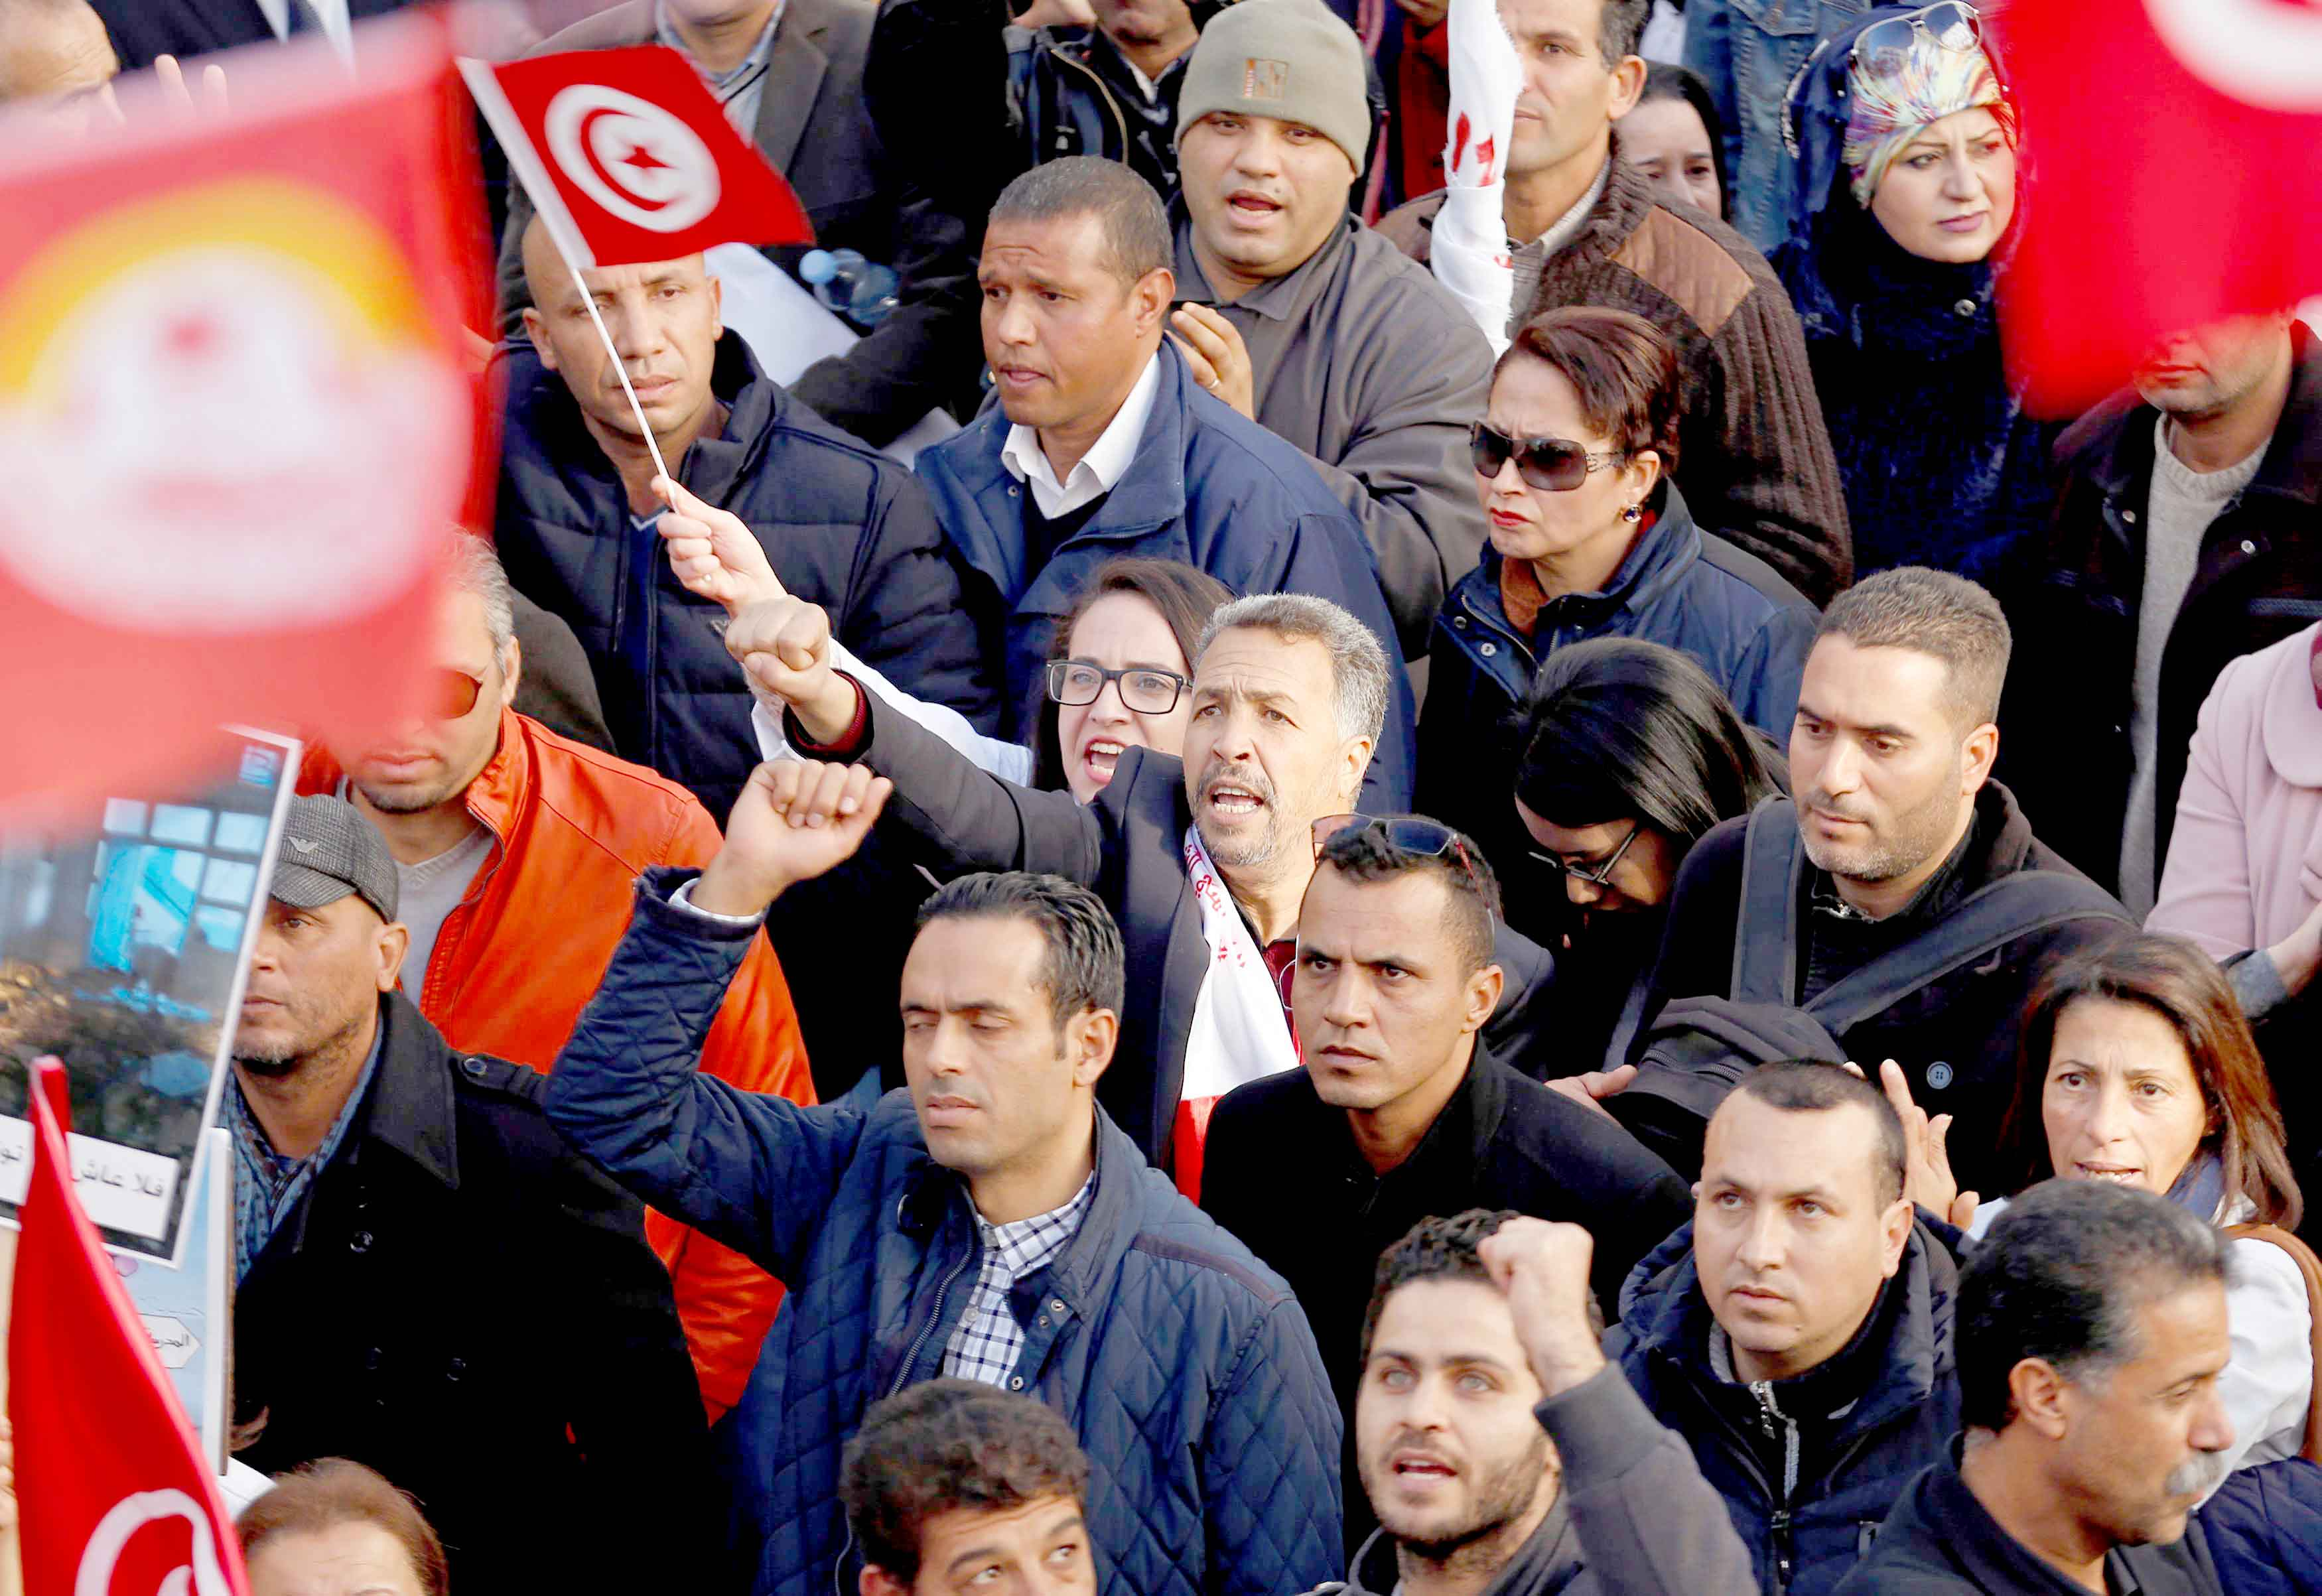 University professors and teachers take part in a protest to demand higher wages in Tunis, December 19. (Reuters)